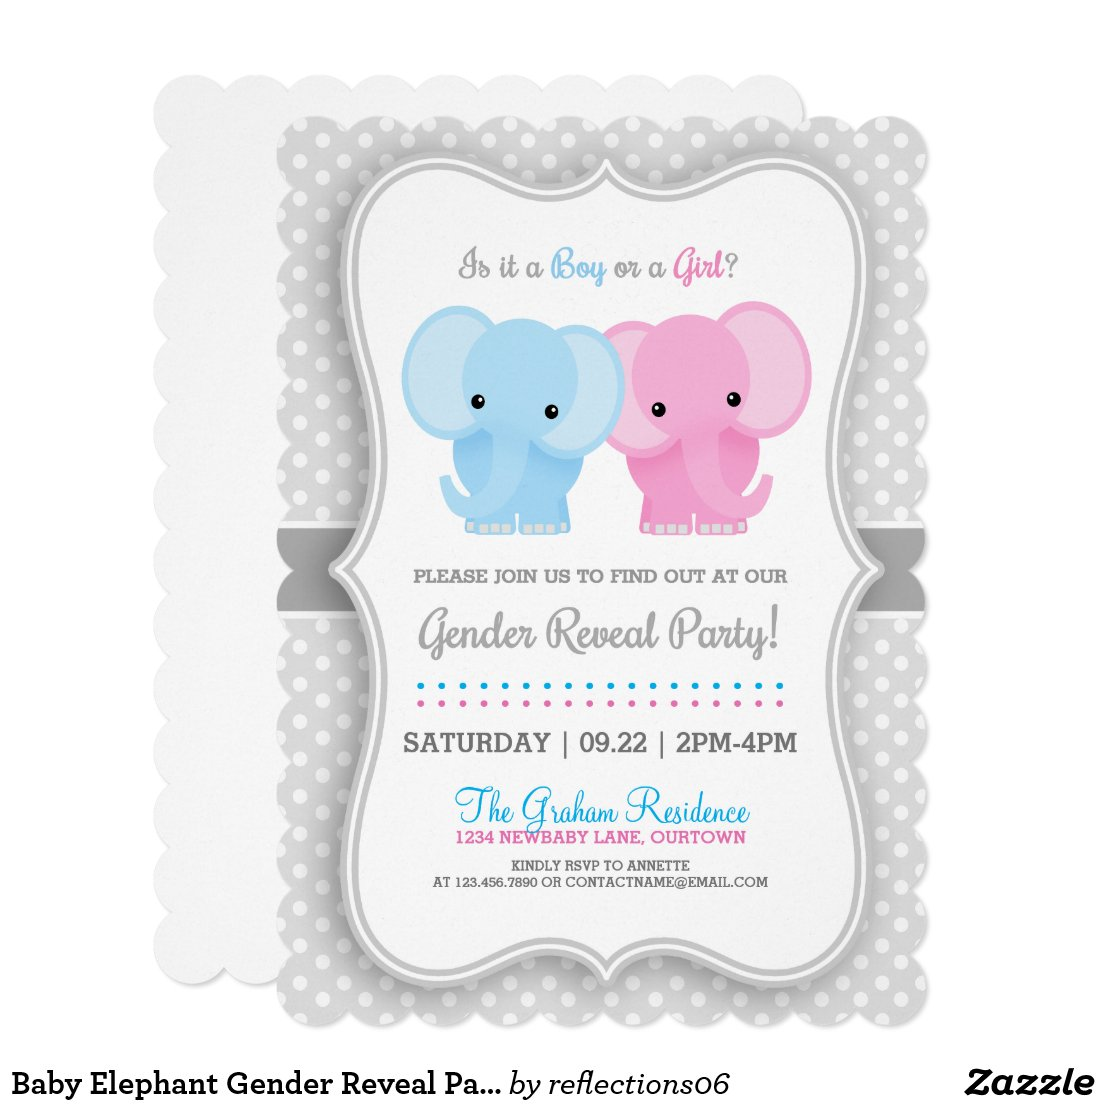 Baby Elephant Gender Reveal Party Card